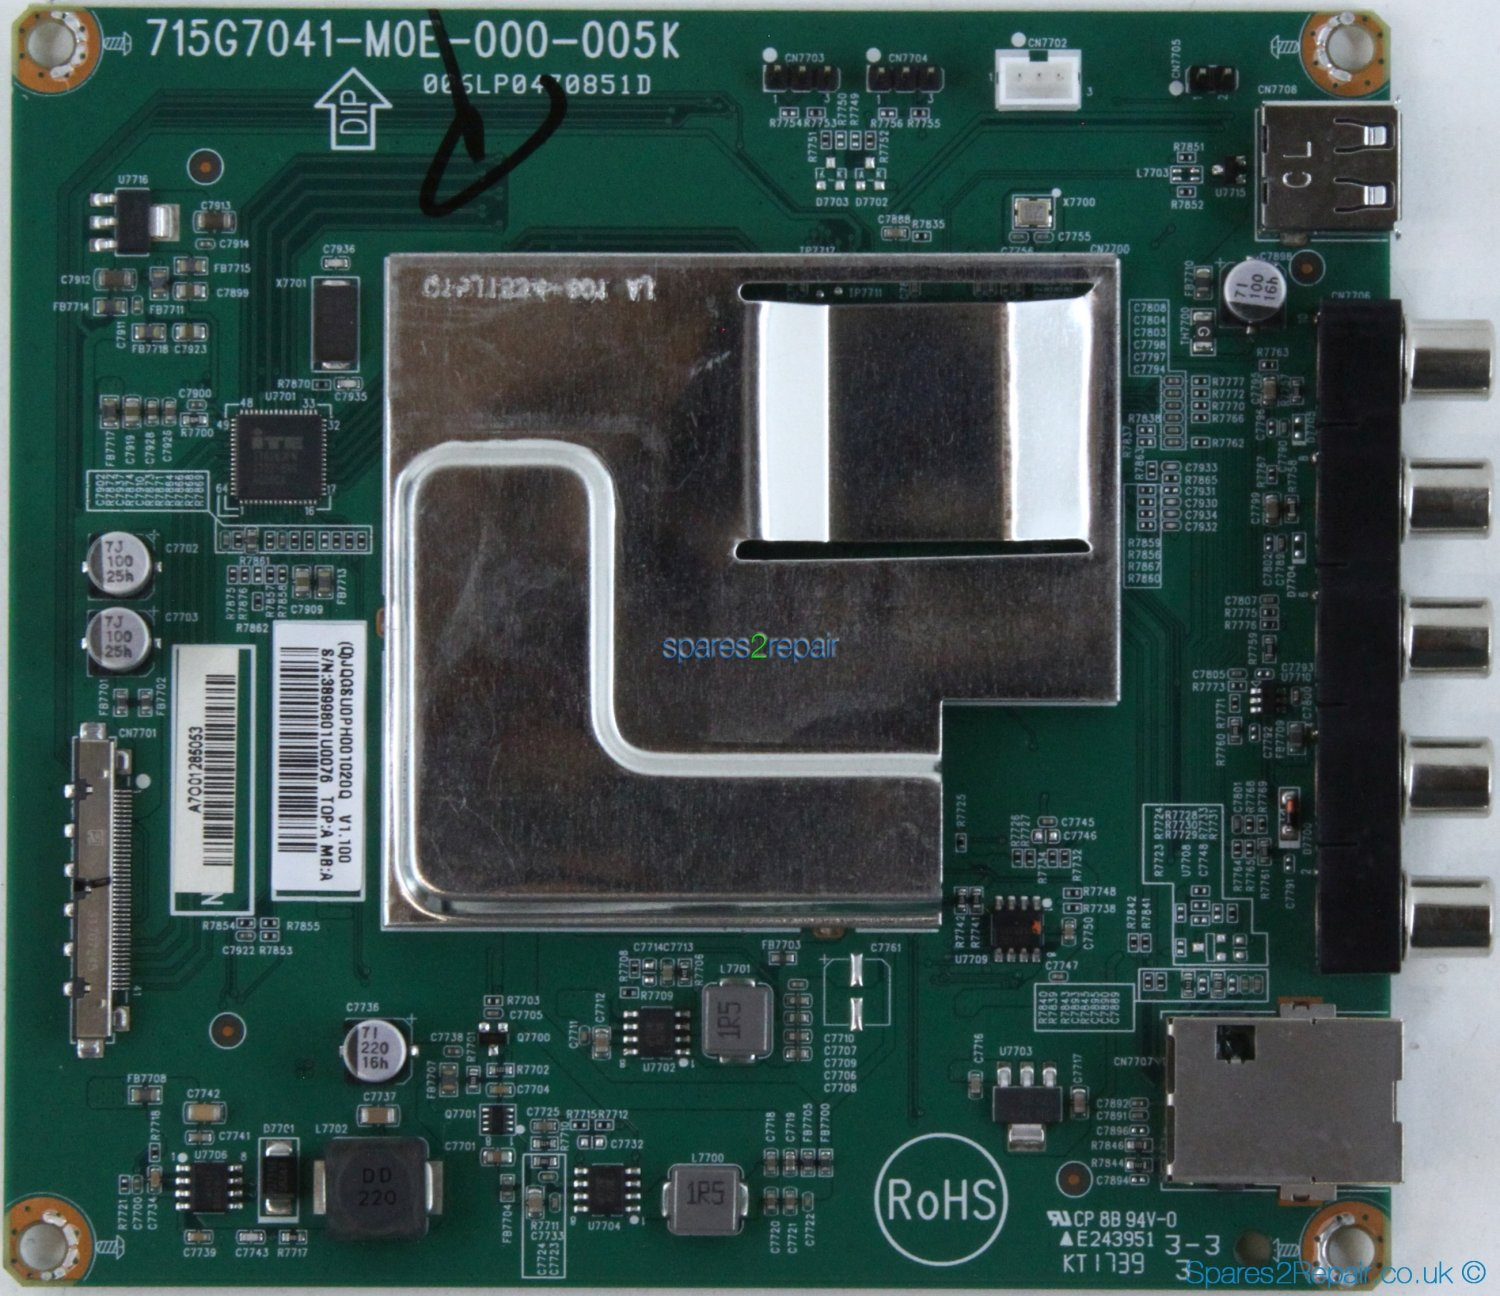 Philips 75BDL3000U - AV Board - 715G7041-M0E-000-005K - 006LP0470851D